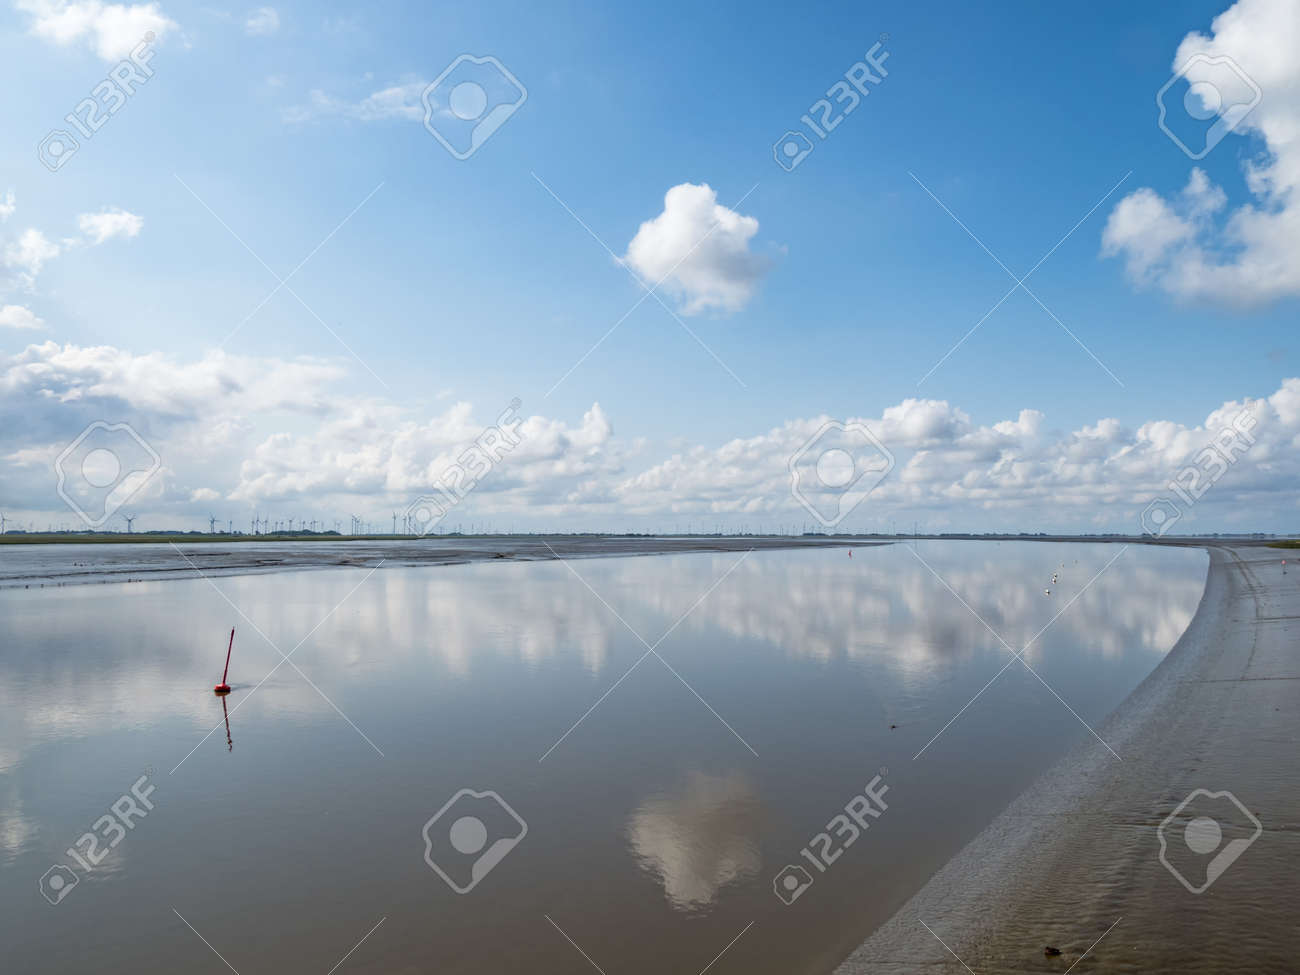 River Eider at low tide near to city Toenning, Schleswig-Holstein, Germany - 161757174